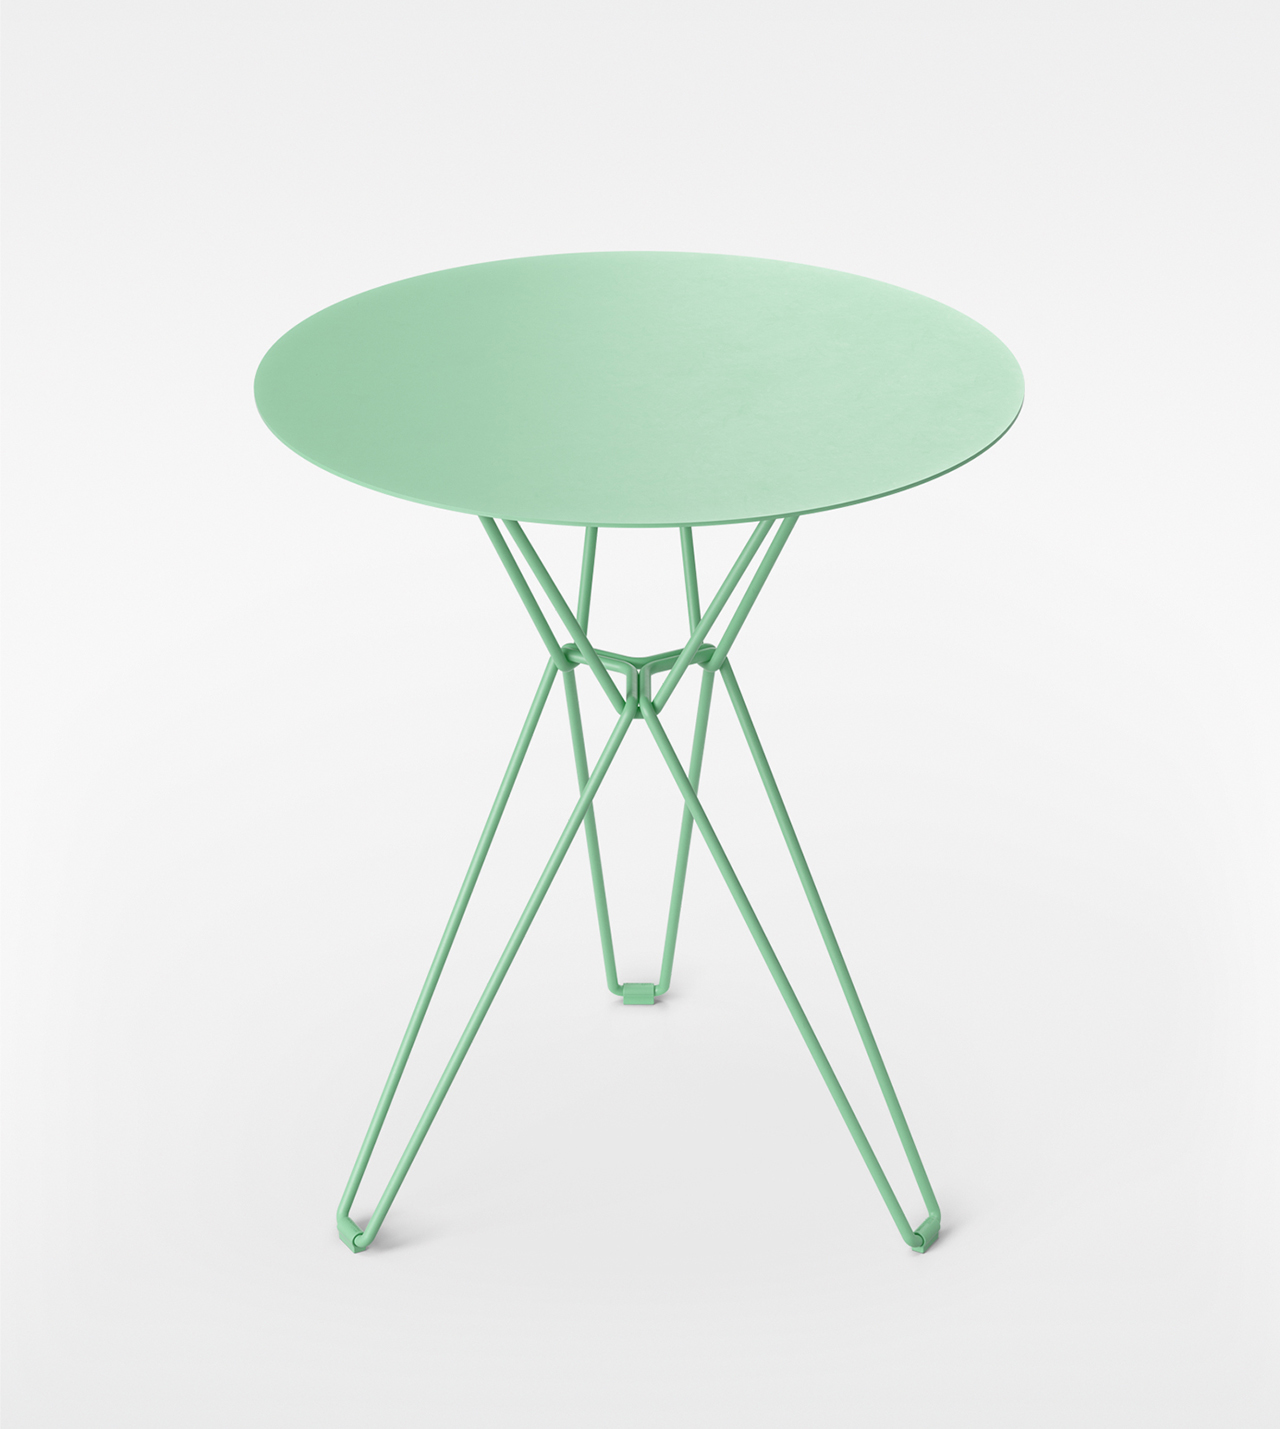 green coffee table on white background